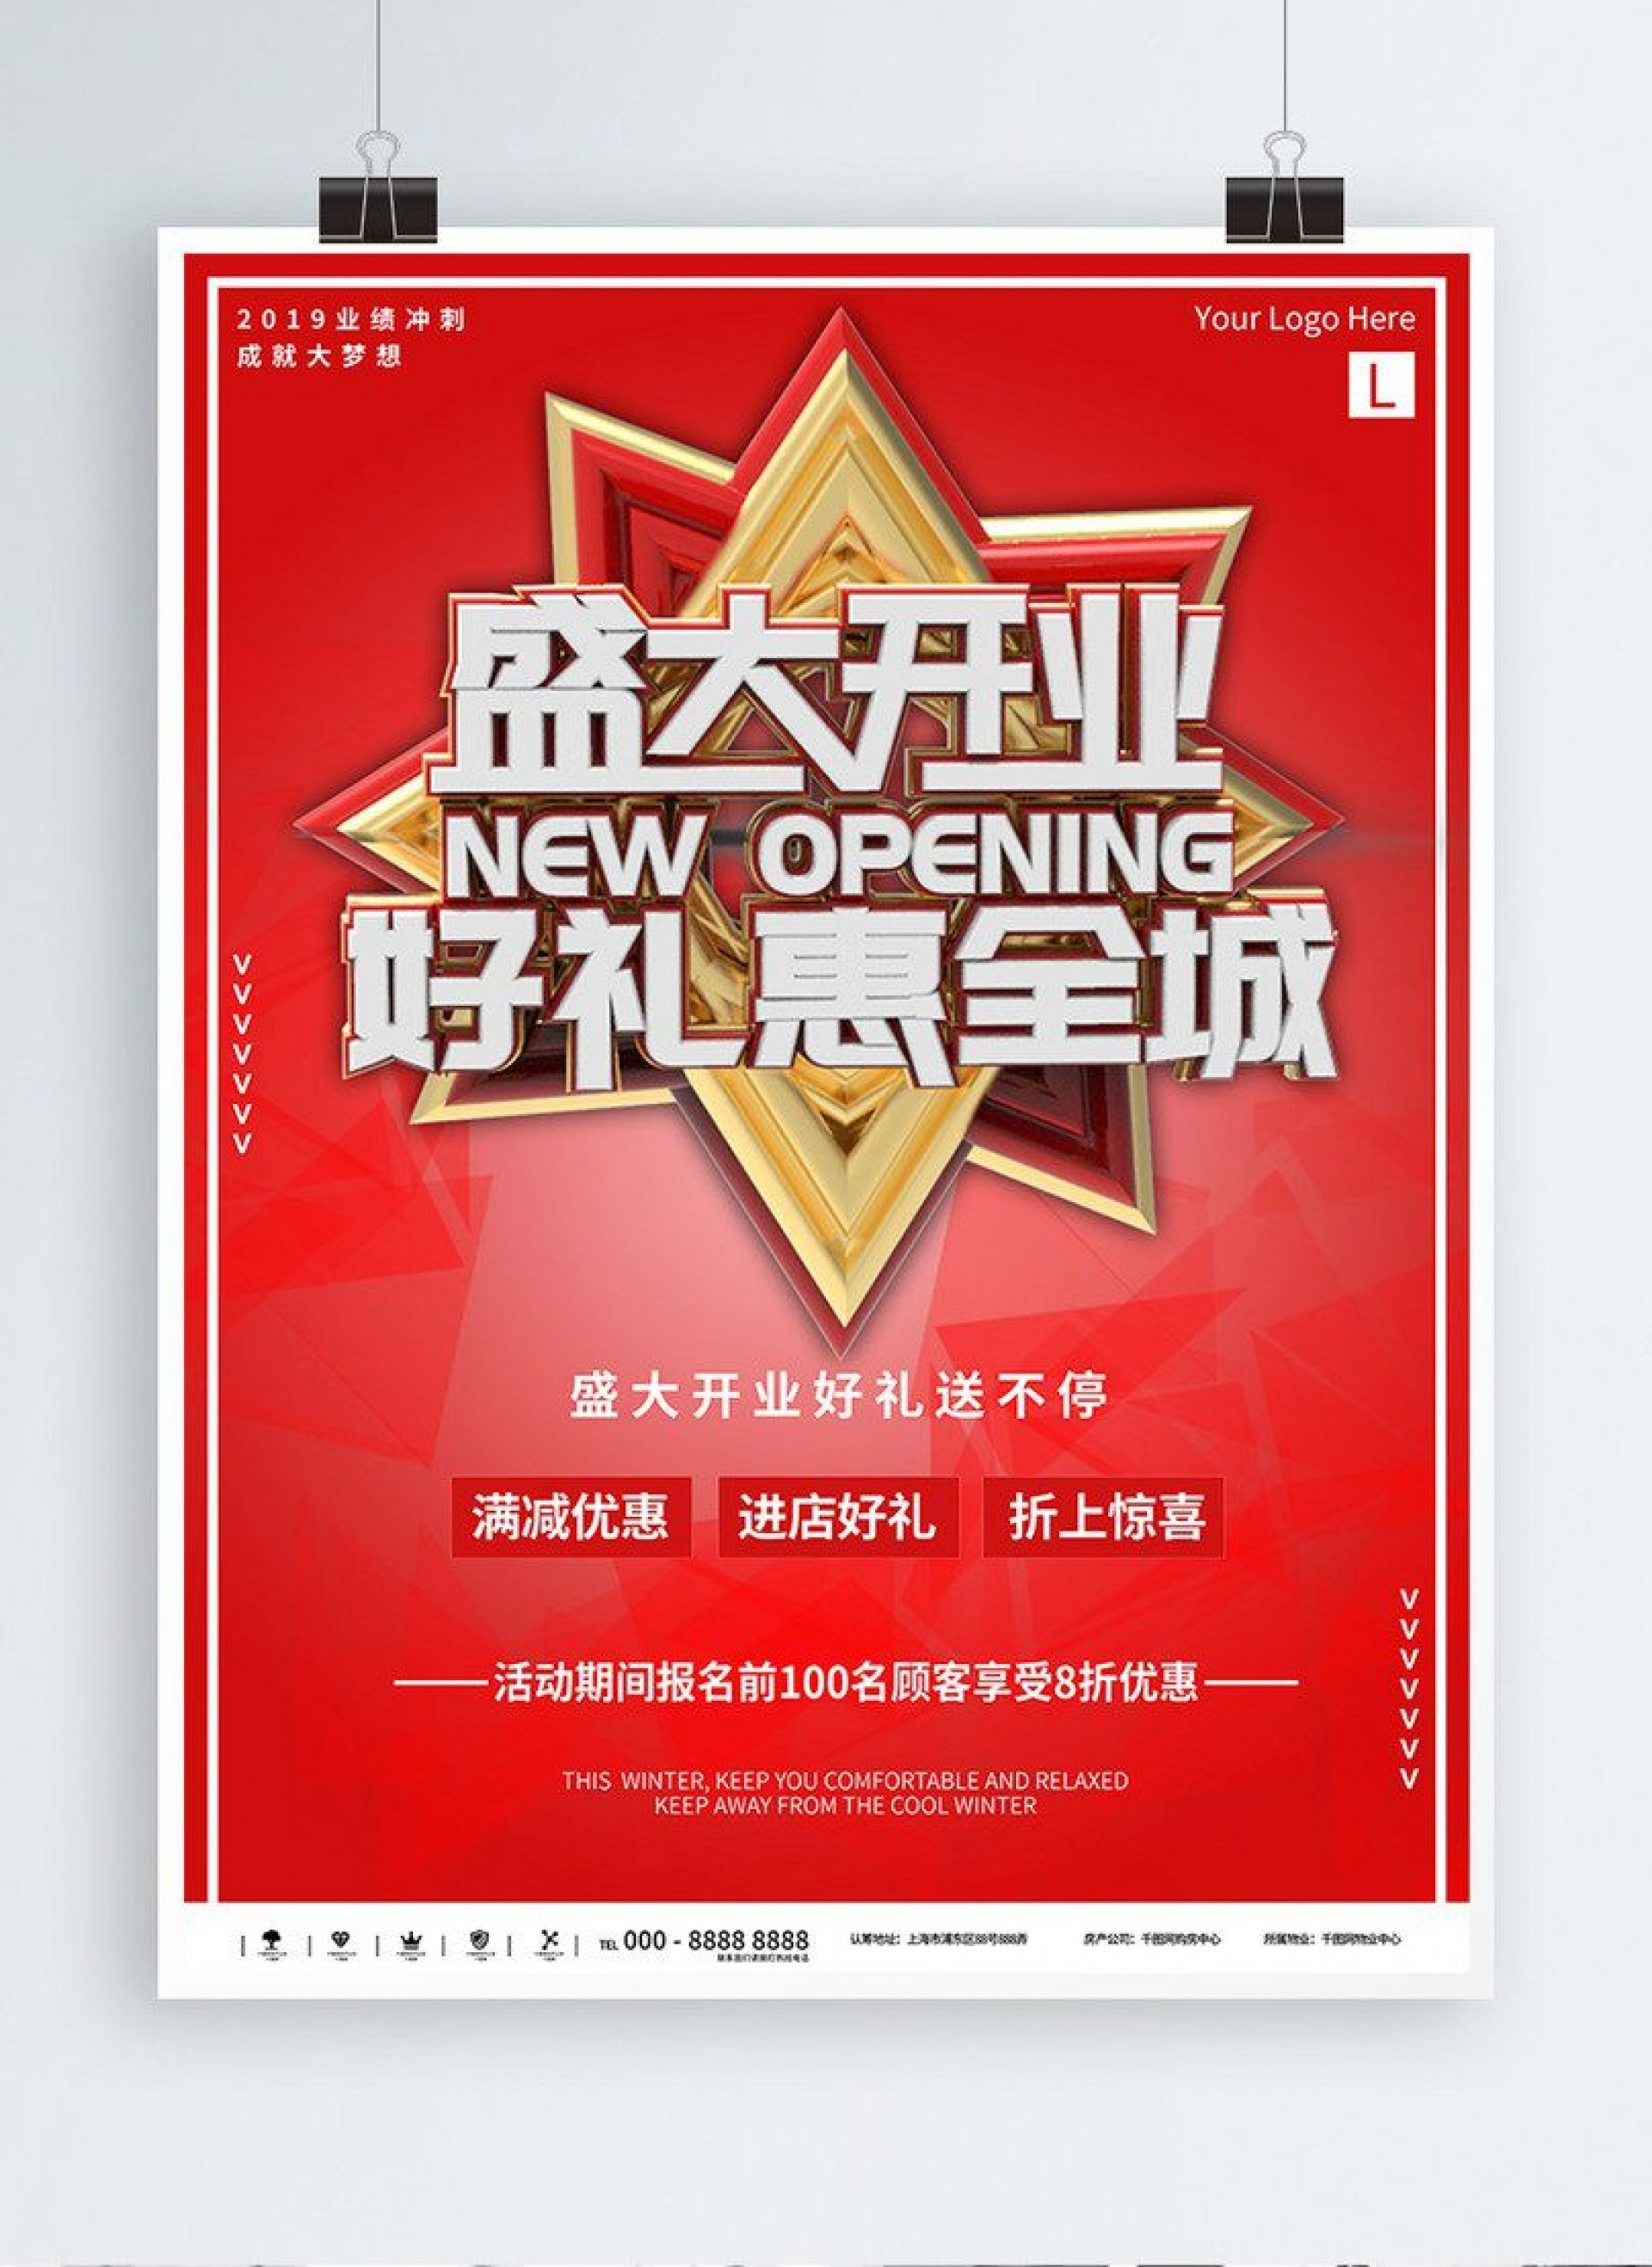 005 Surprising Grand Opening Flyer Template Image  Free Psd Busines1920